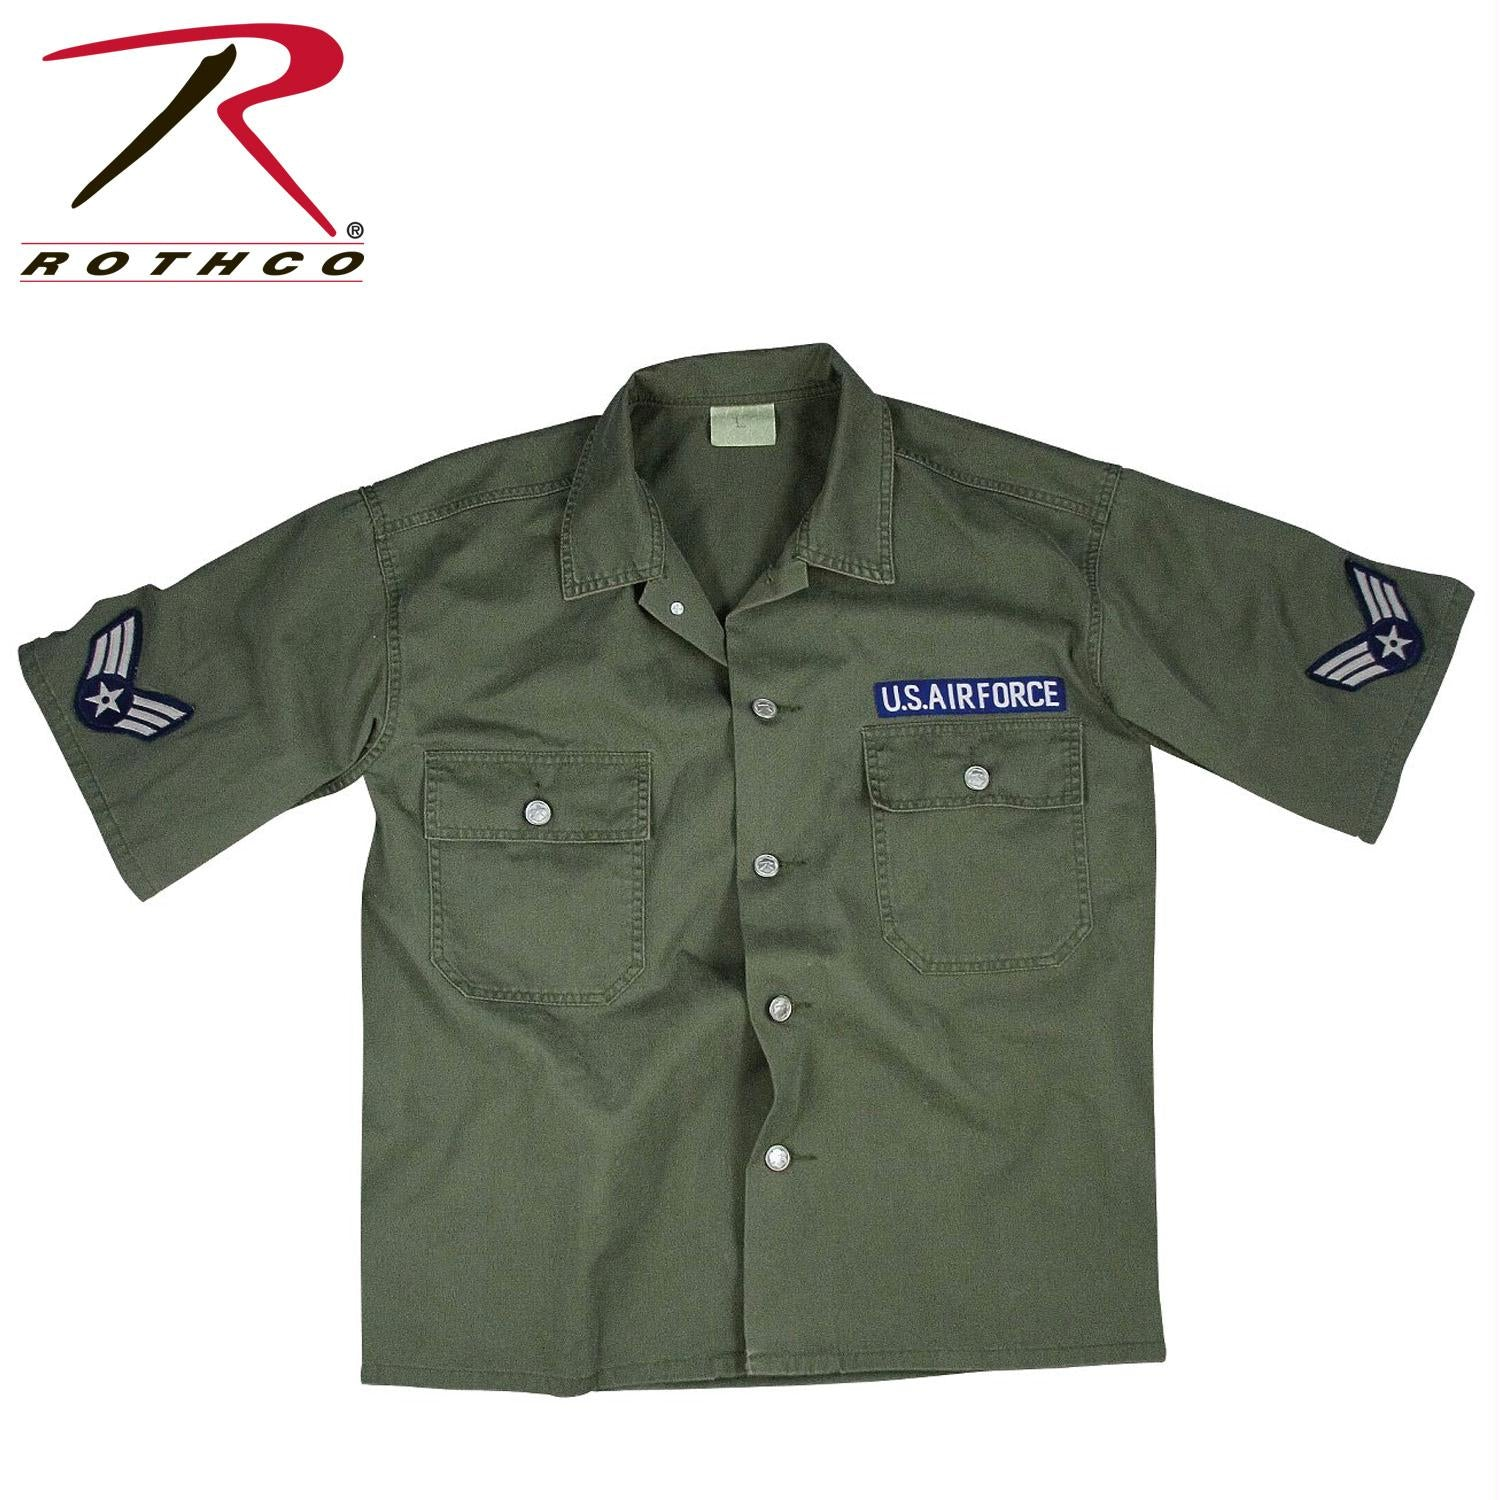 Rothco Vintage Army Air Force Short Sleeve BDU Shirt - M